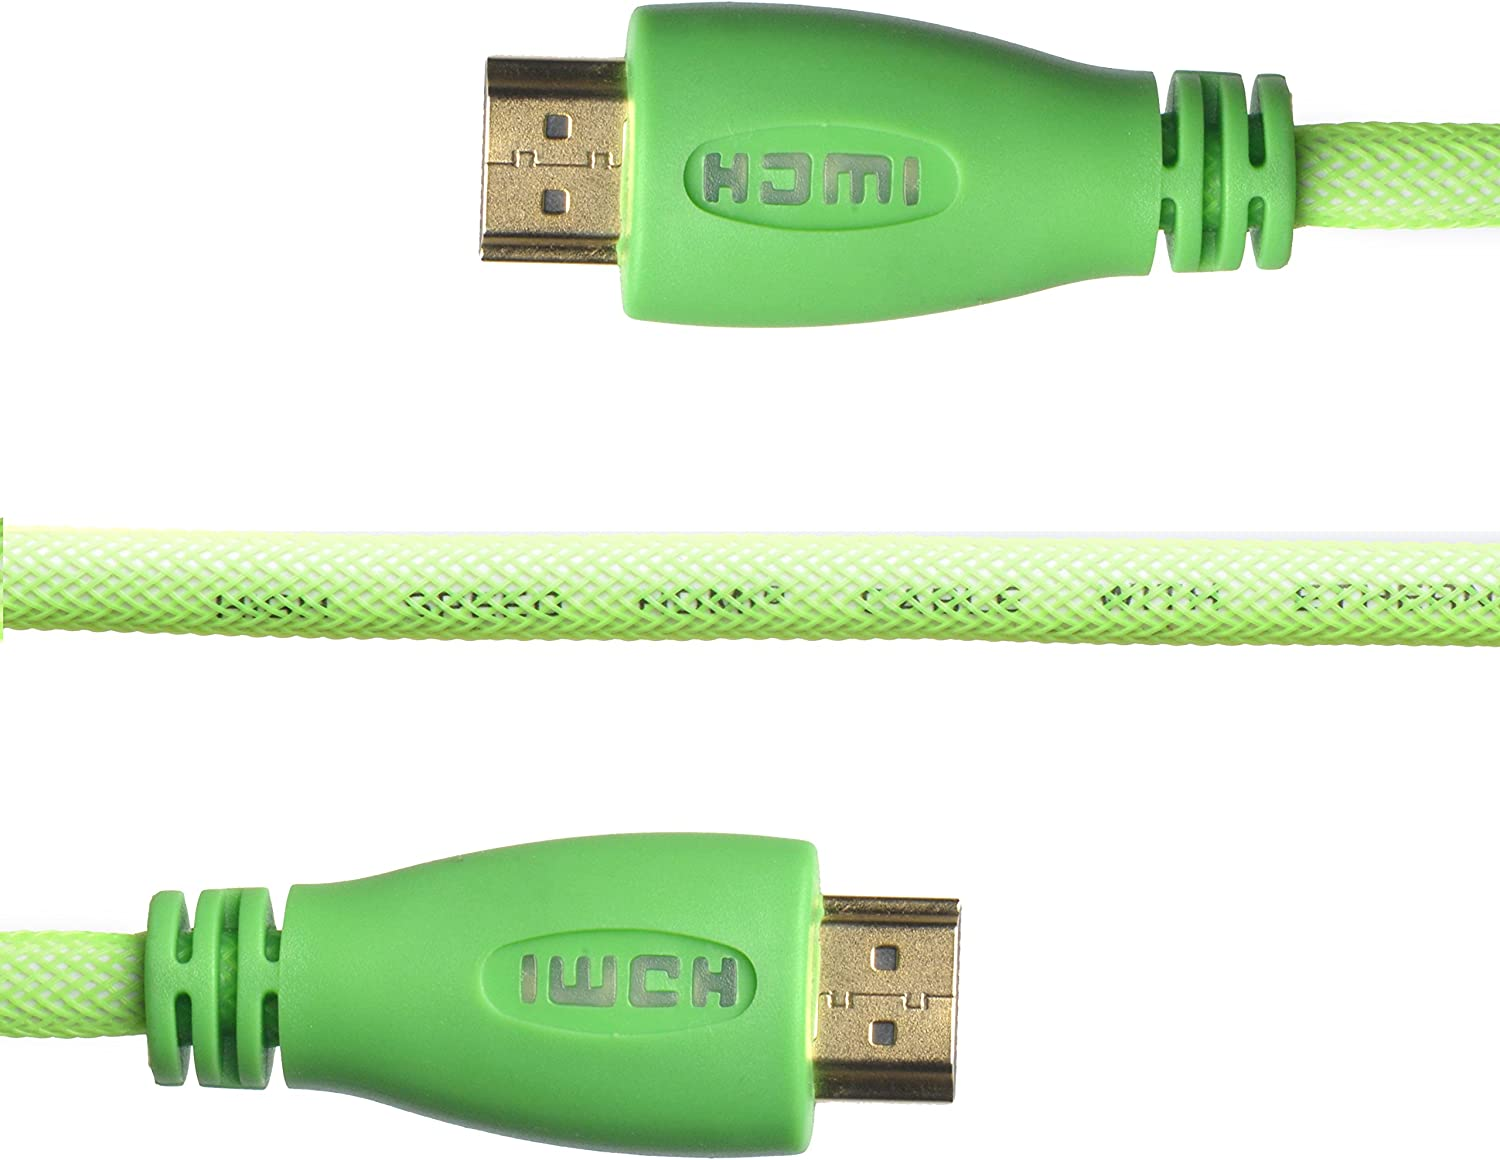 WGGE LED HDMI Cable 2.0 High speed, Nylon braiding, HDMI(19 PIN by copper wire), Gold connectors, Support 4k 1080p 3D TV, Ethernet, Home theater, HDTV, XBOX and set-top boxes (10 feet, GREEN)